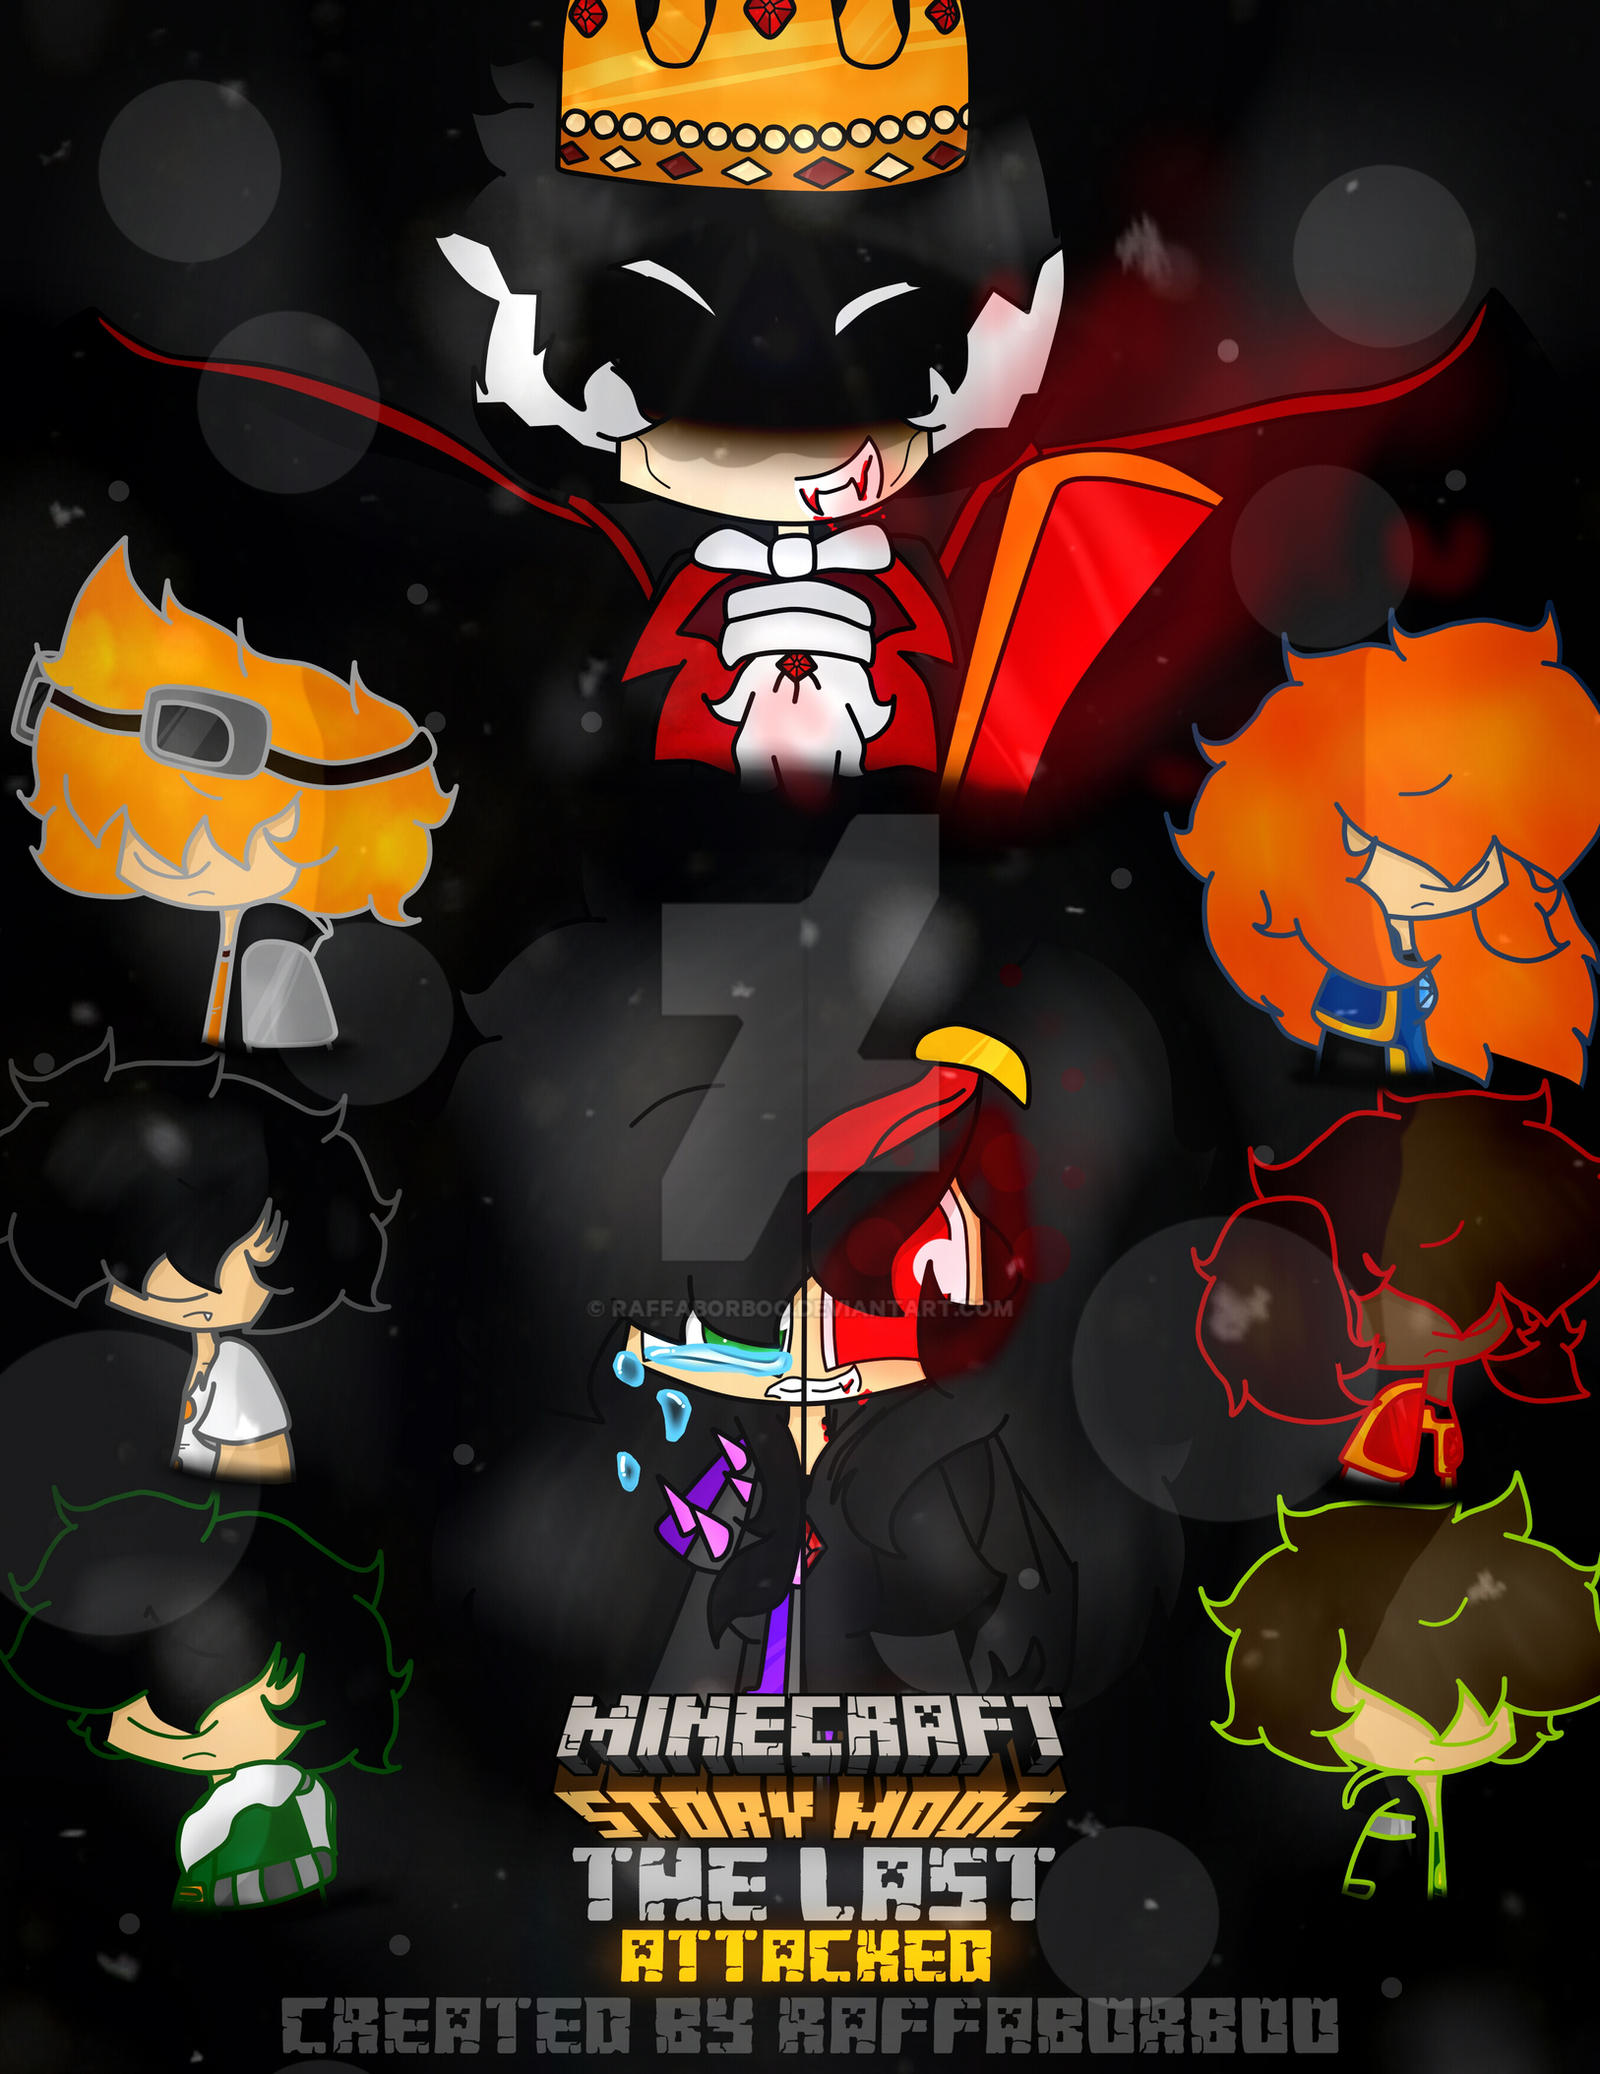 Minecraft story mode the last attacked by raffaborboo on deviantart - Minecraft story mode wallpaper ...